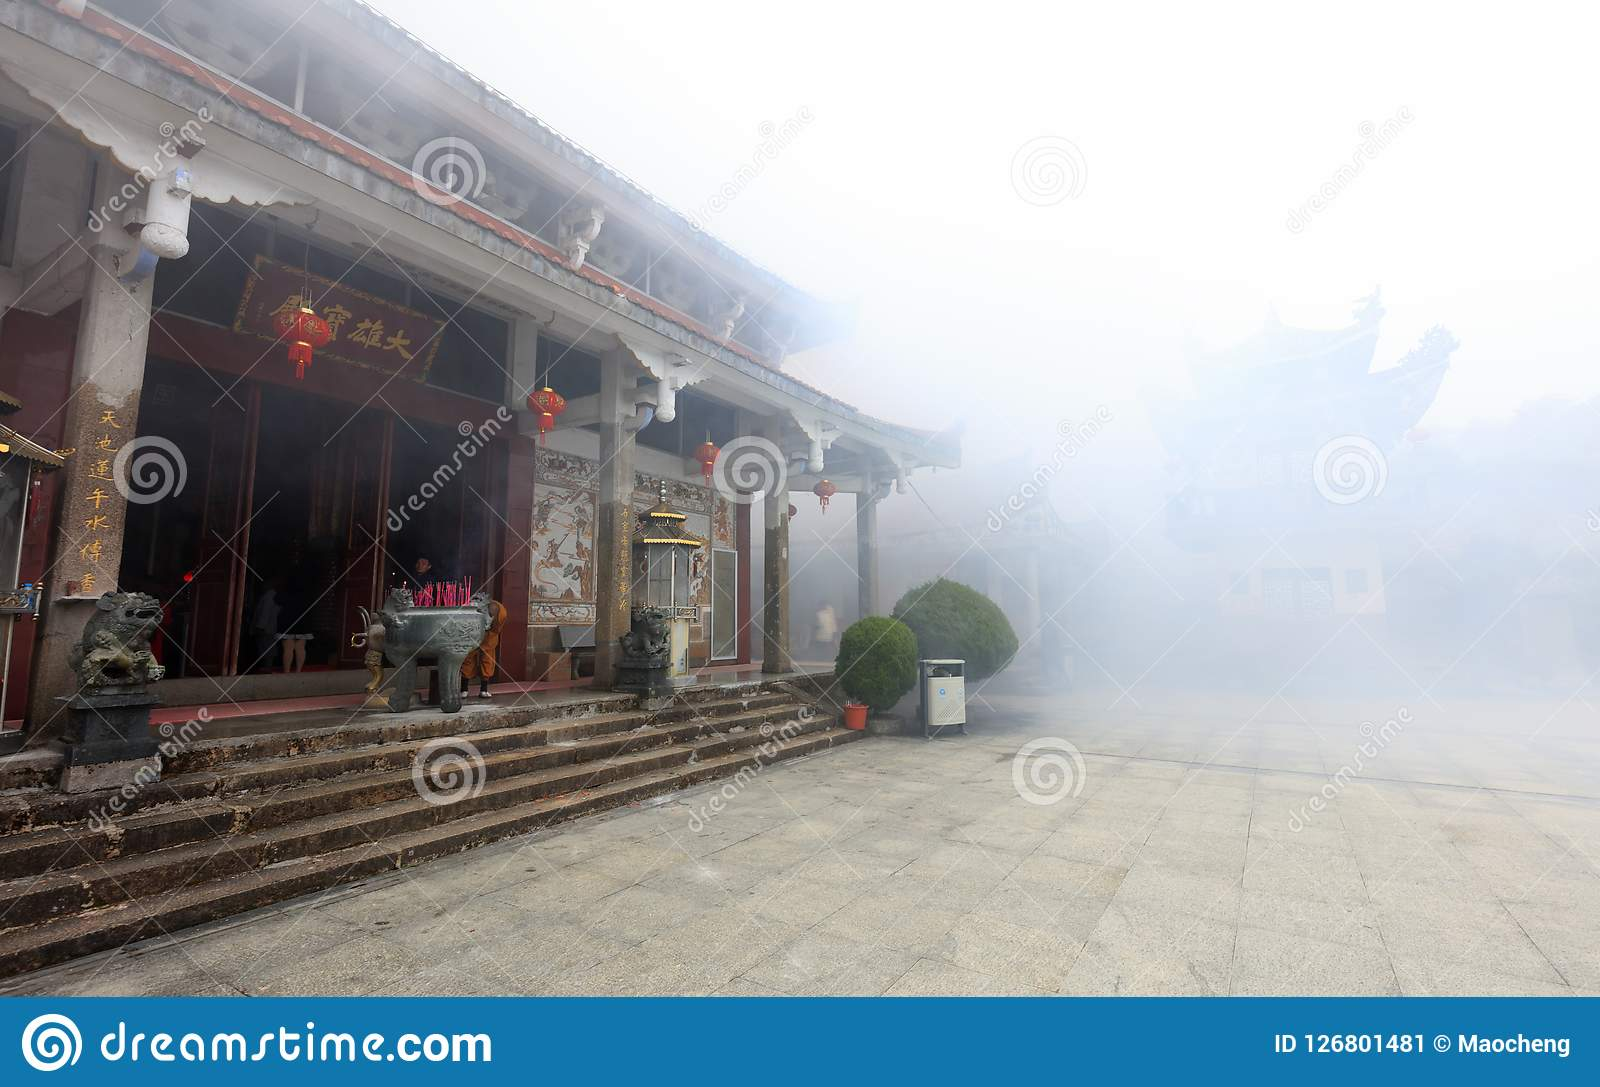 Famous lingjiuyansi temple in smog, srgb image